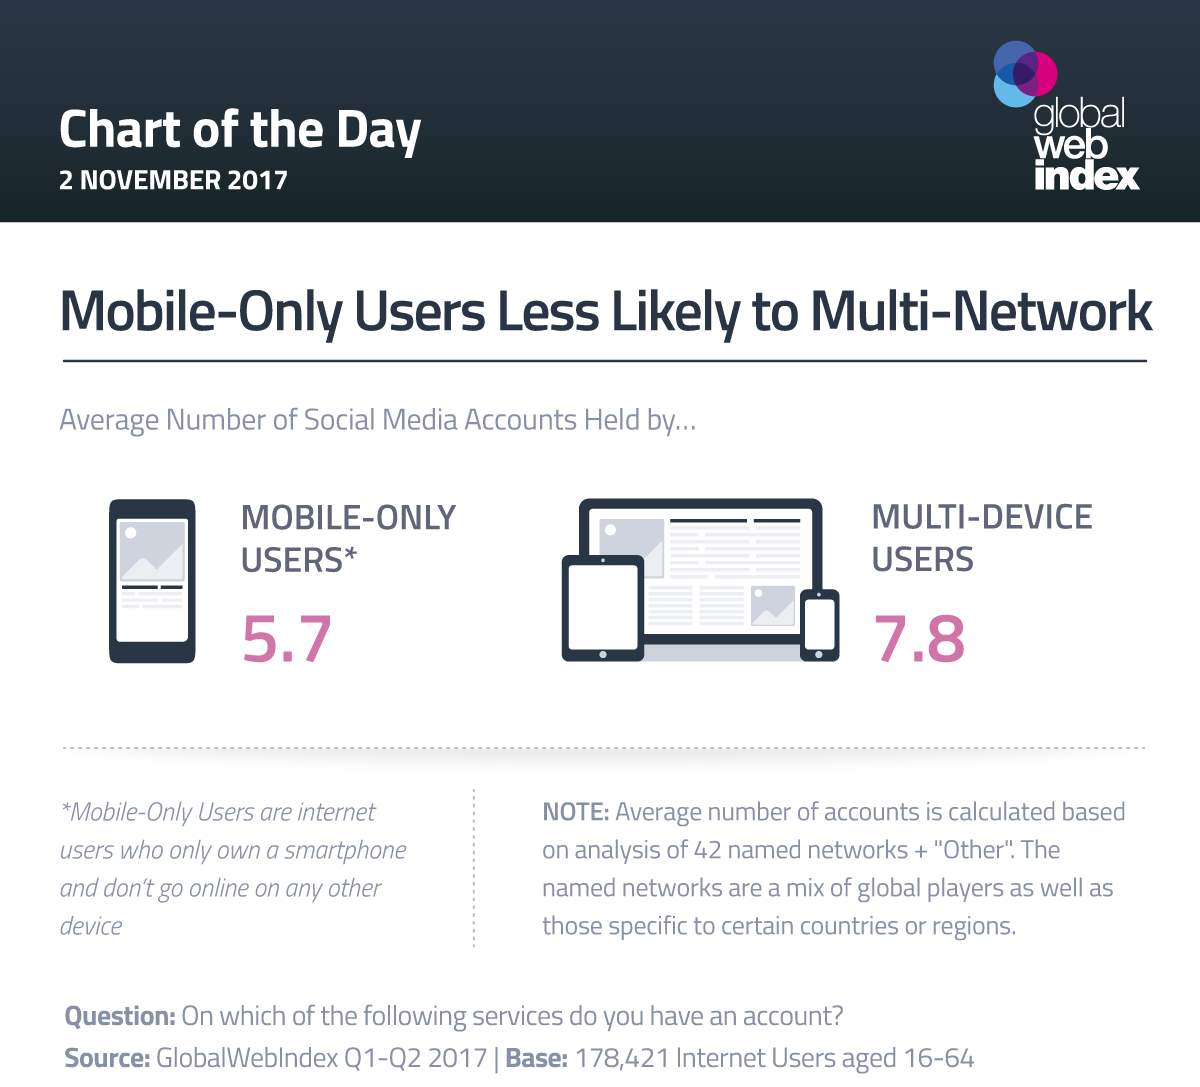 Mobile-Only Users Less Likely to Multi-Network